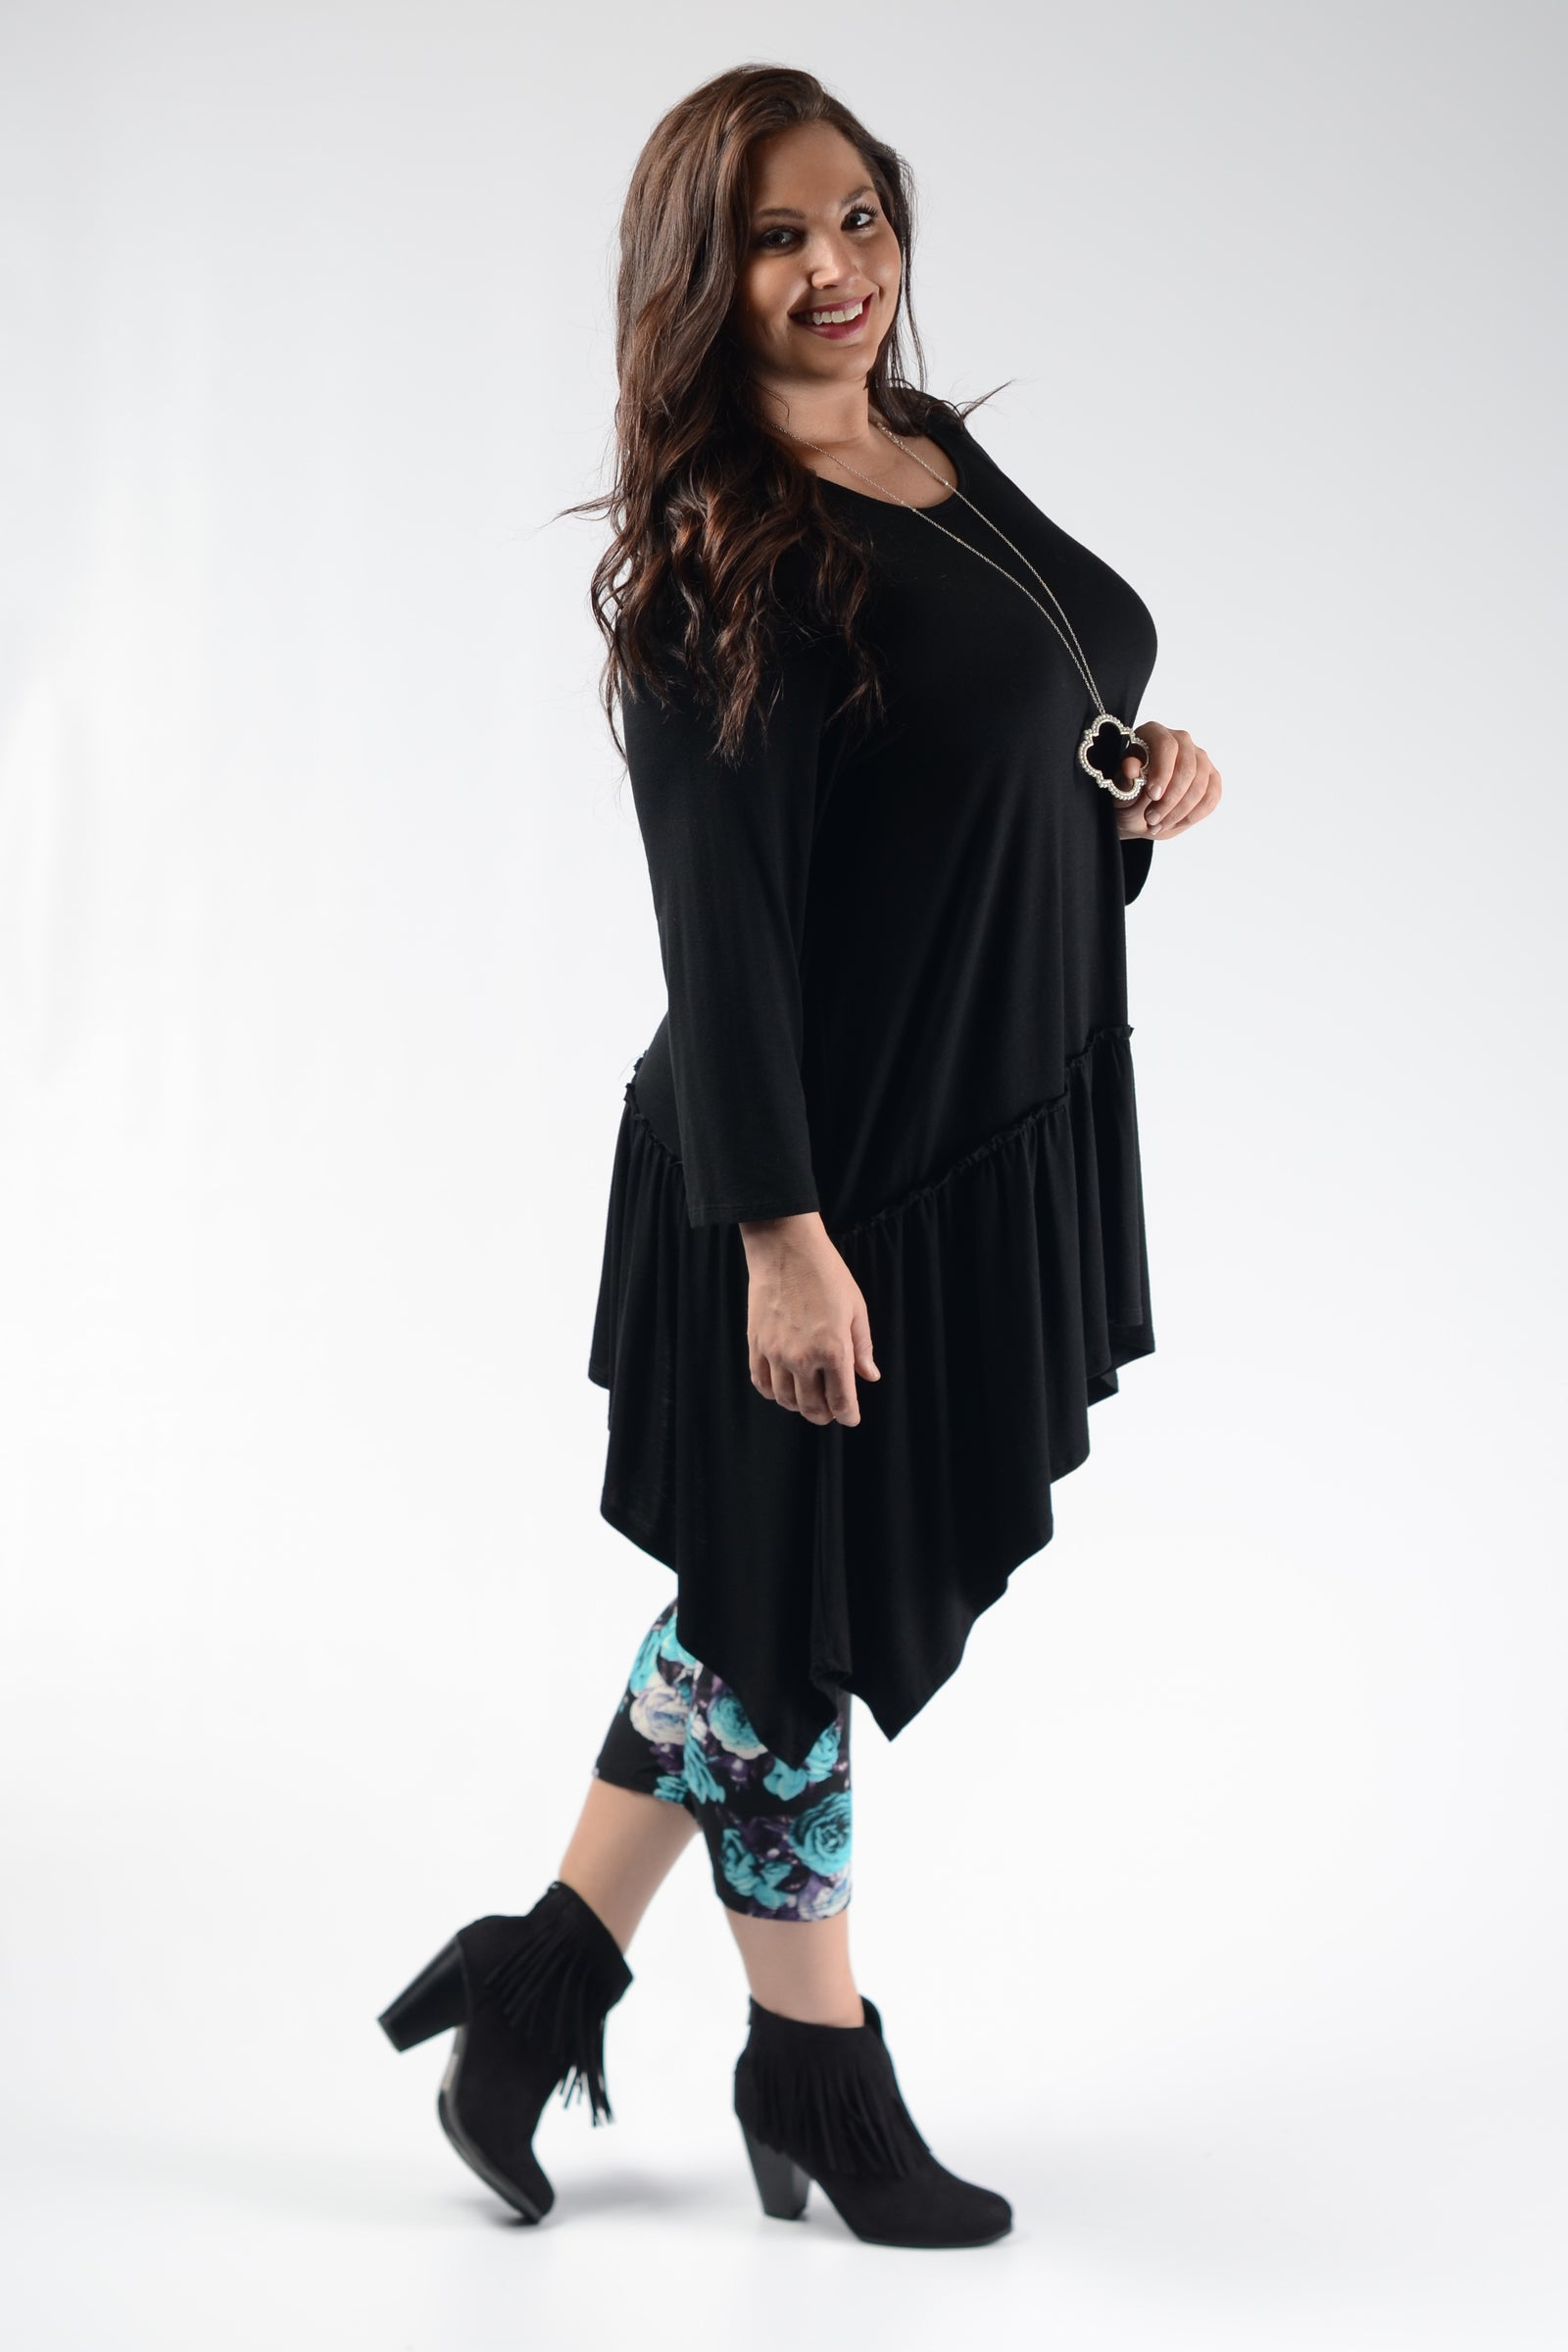 Black Layer Asymmetrical Tunic - www.mycurvystore.com - Curvy Boutique - Plus Size